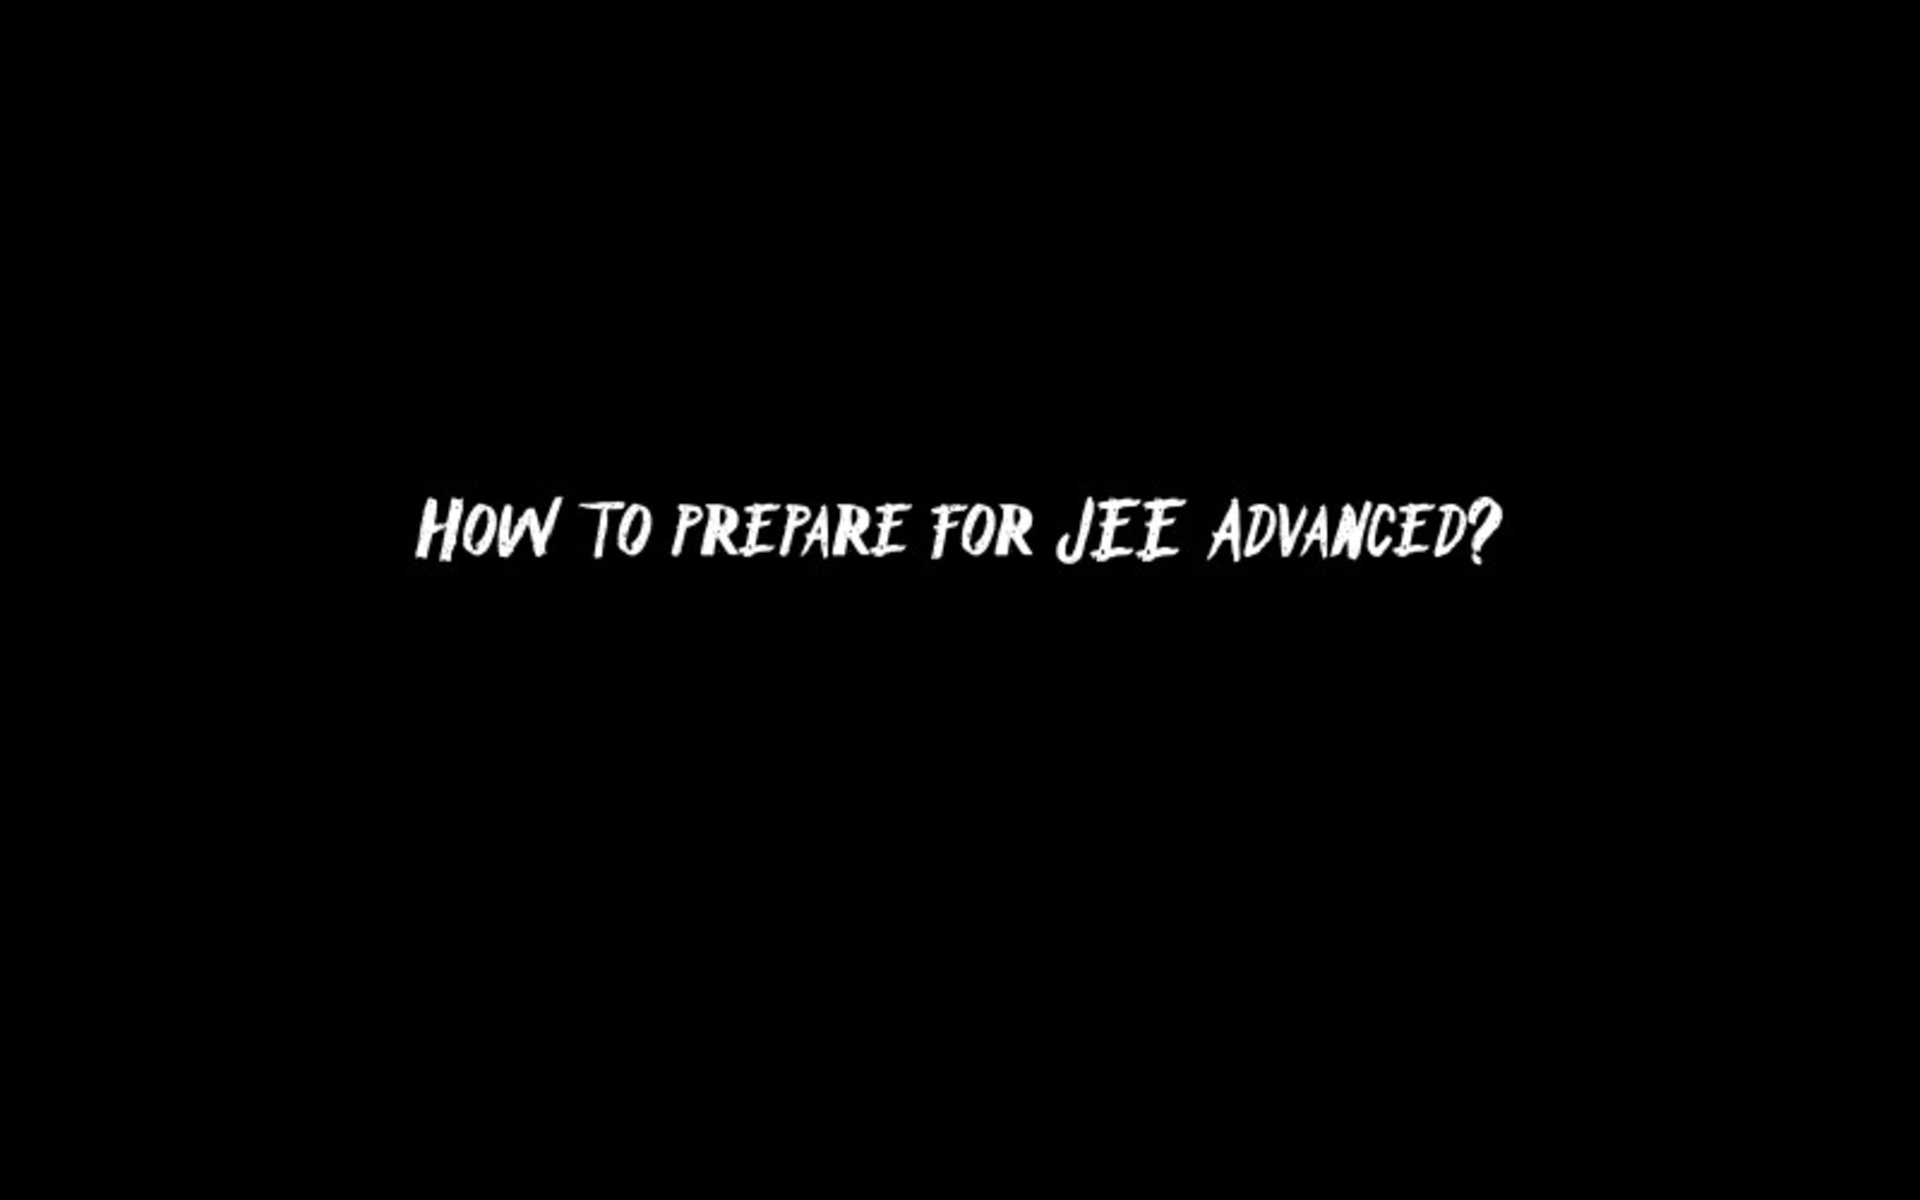 How to prepare for JEE Advanced? image